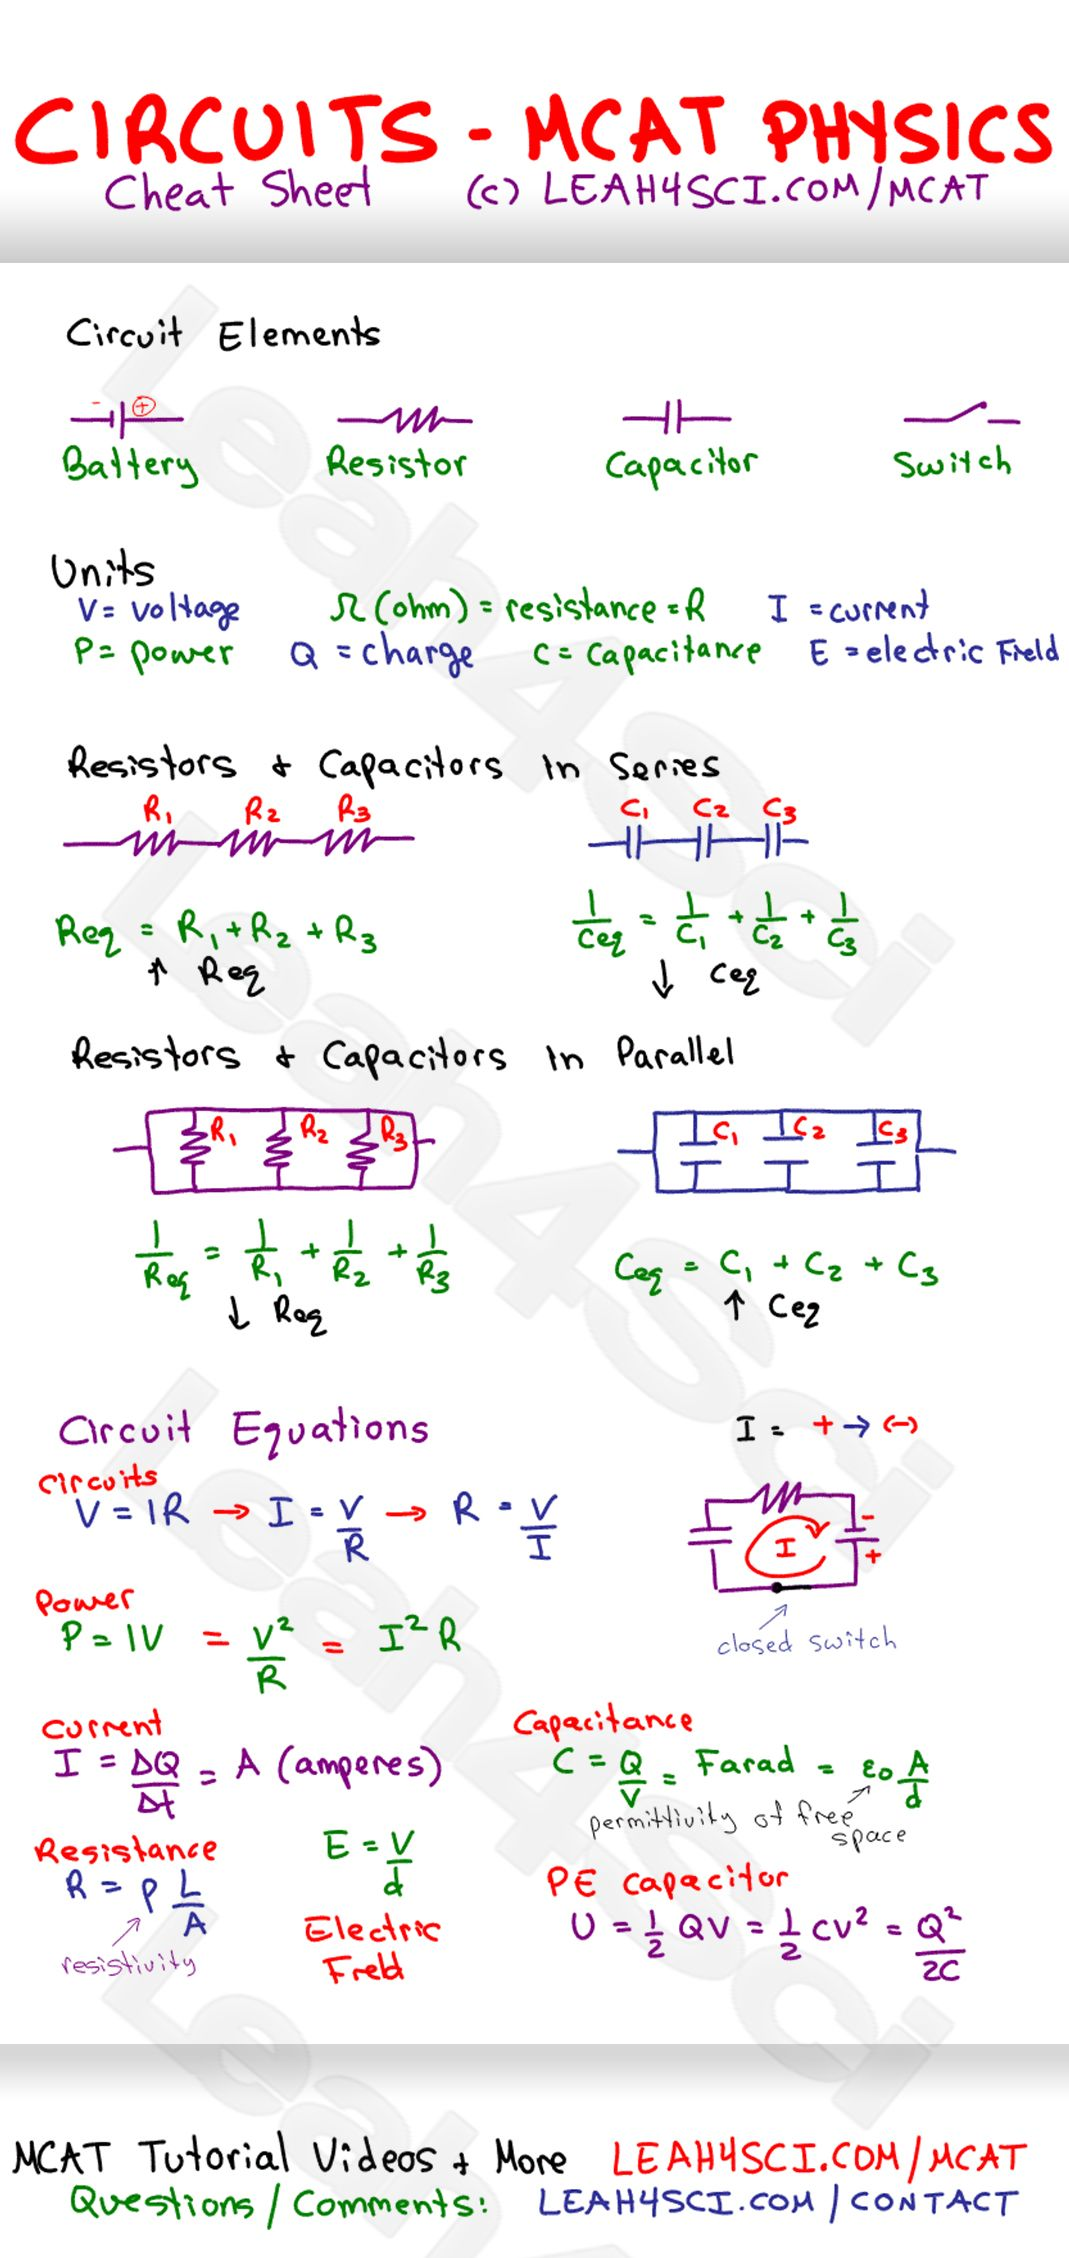 circuits in mcat physics study guide cheat sheet - Periodic Table Charges Cheat Sheet